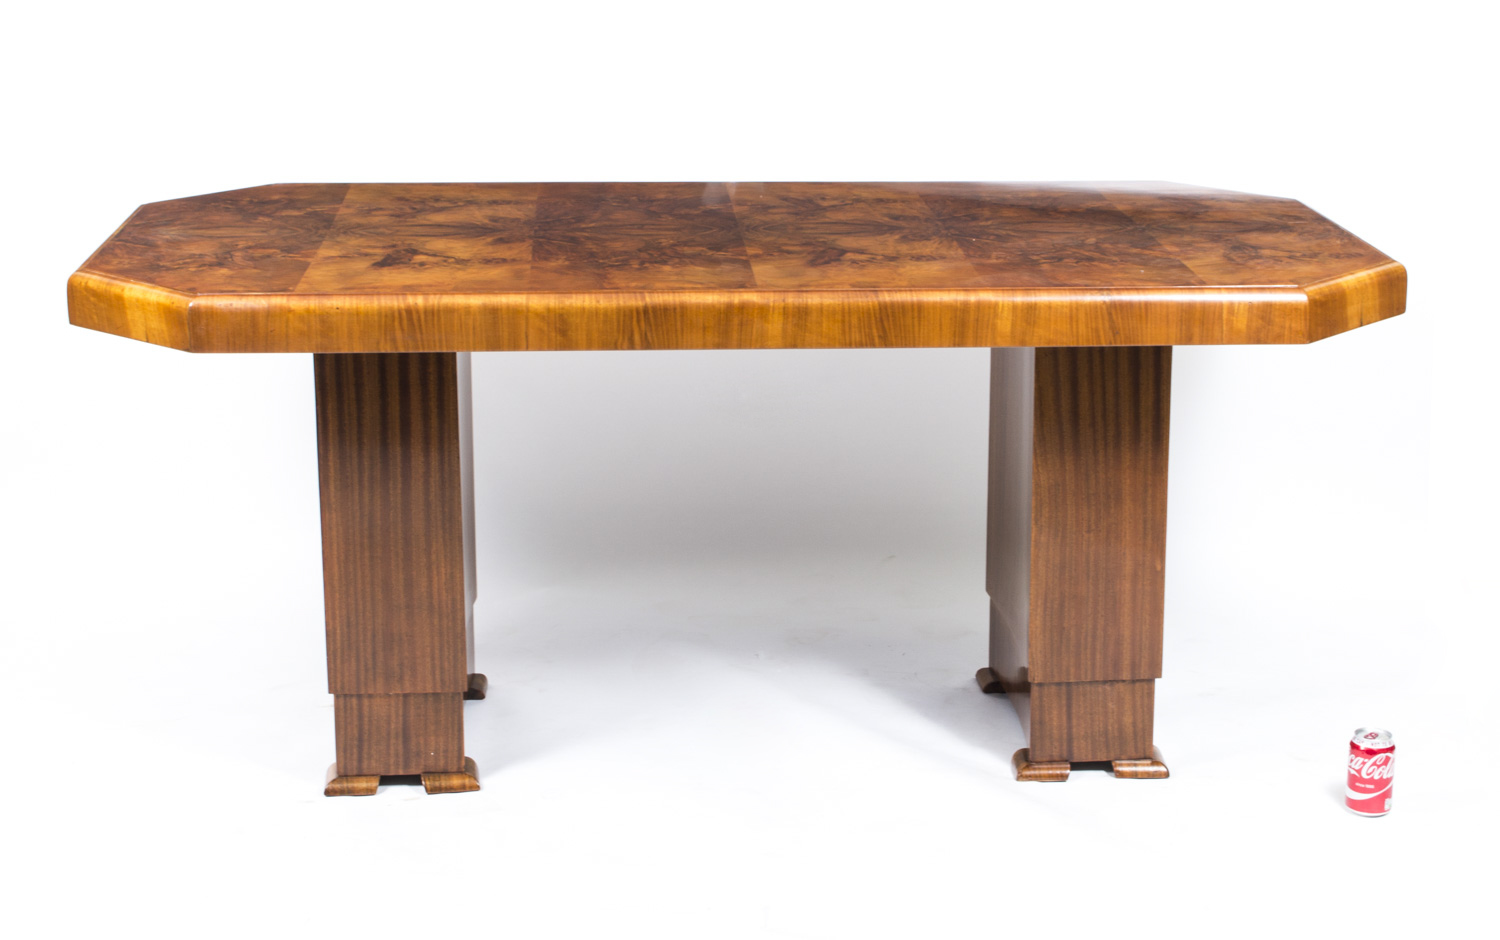 regent antiques dining tables and chairs tables antique art deco dining table burr walnut. Black Bedroom Furniture Sets. Home Design Ideas